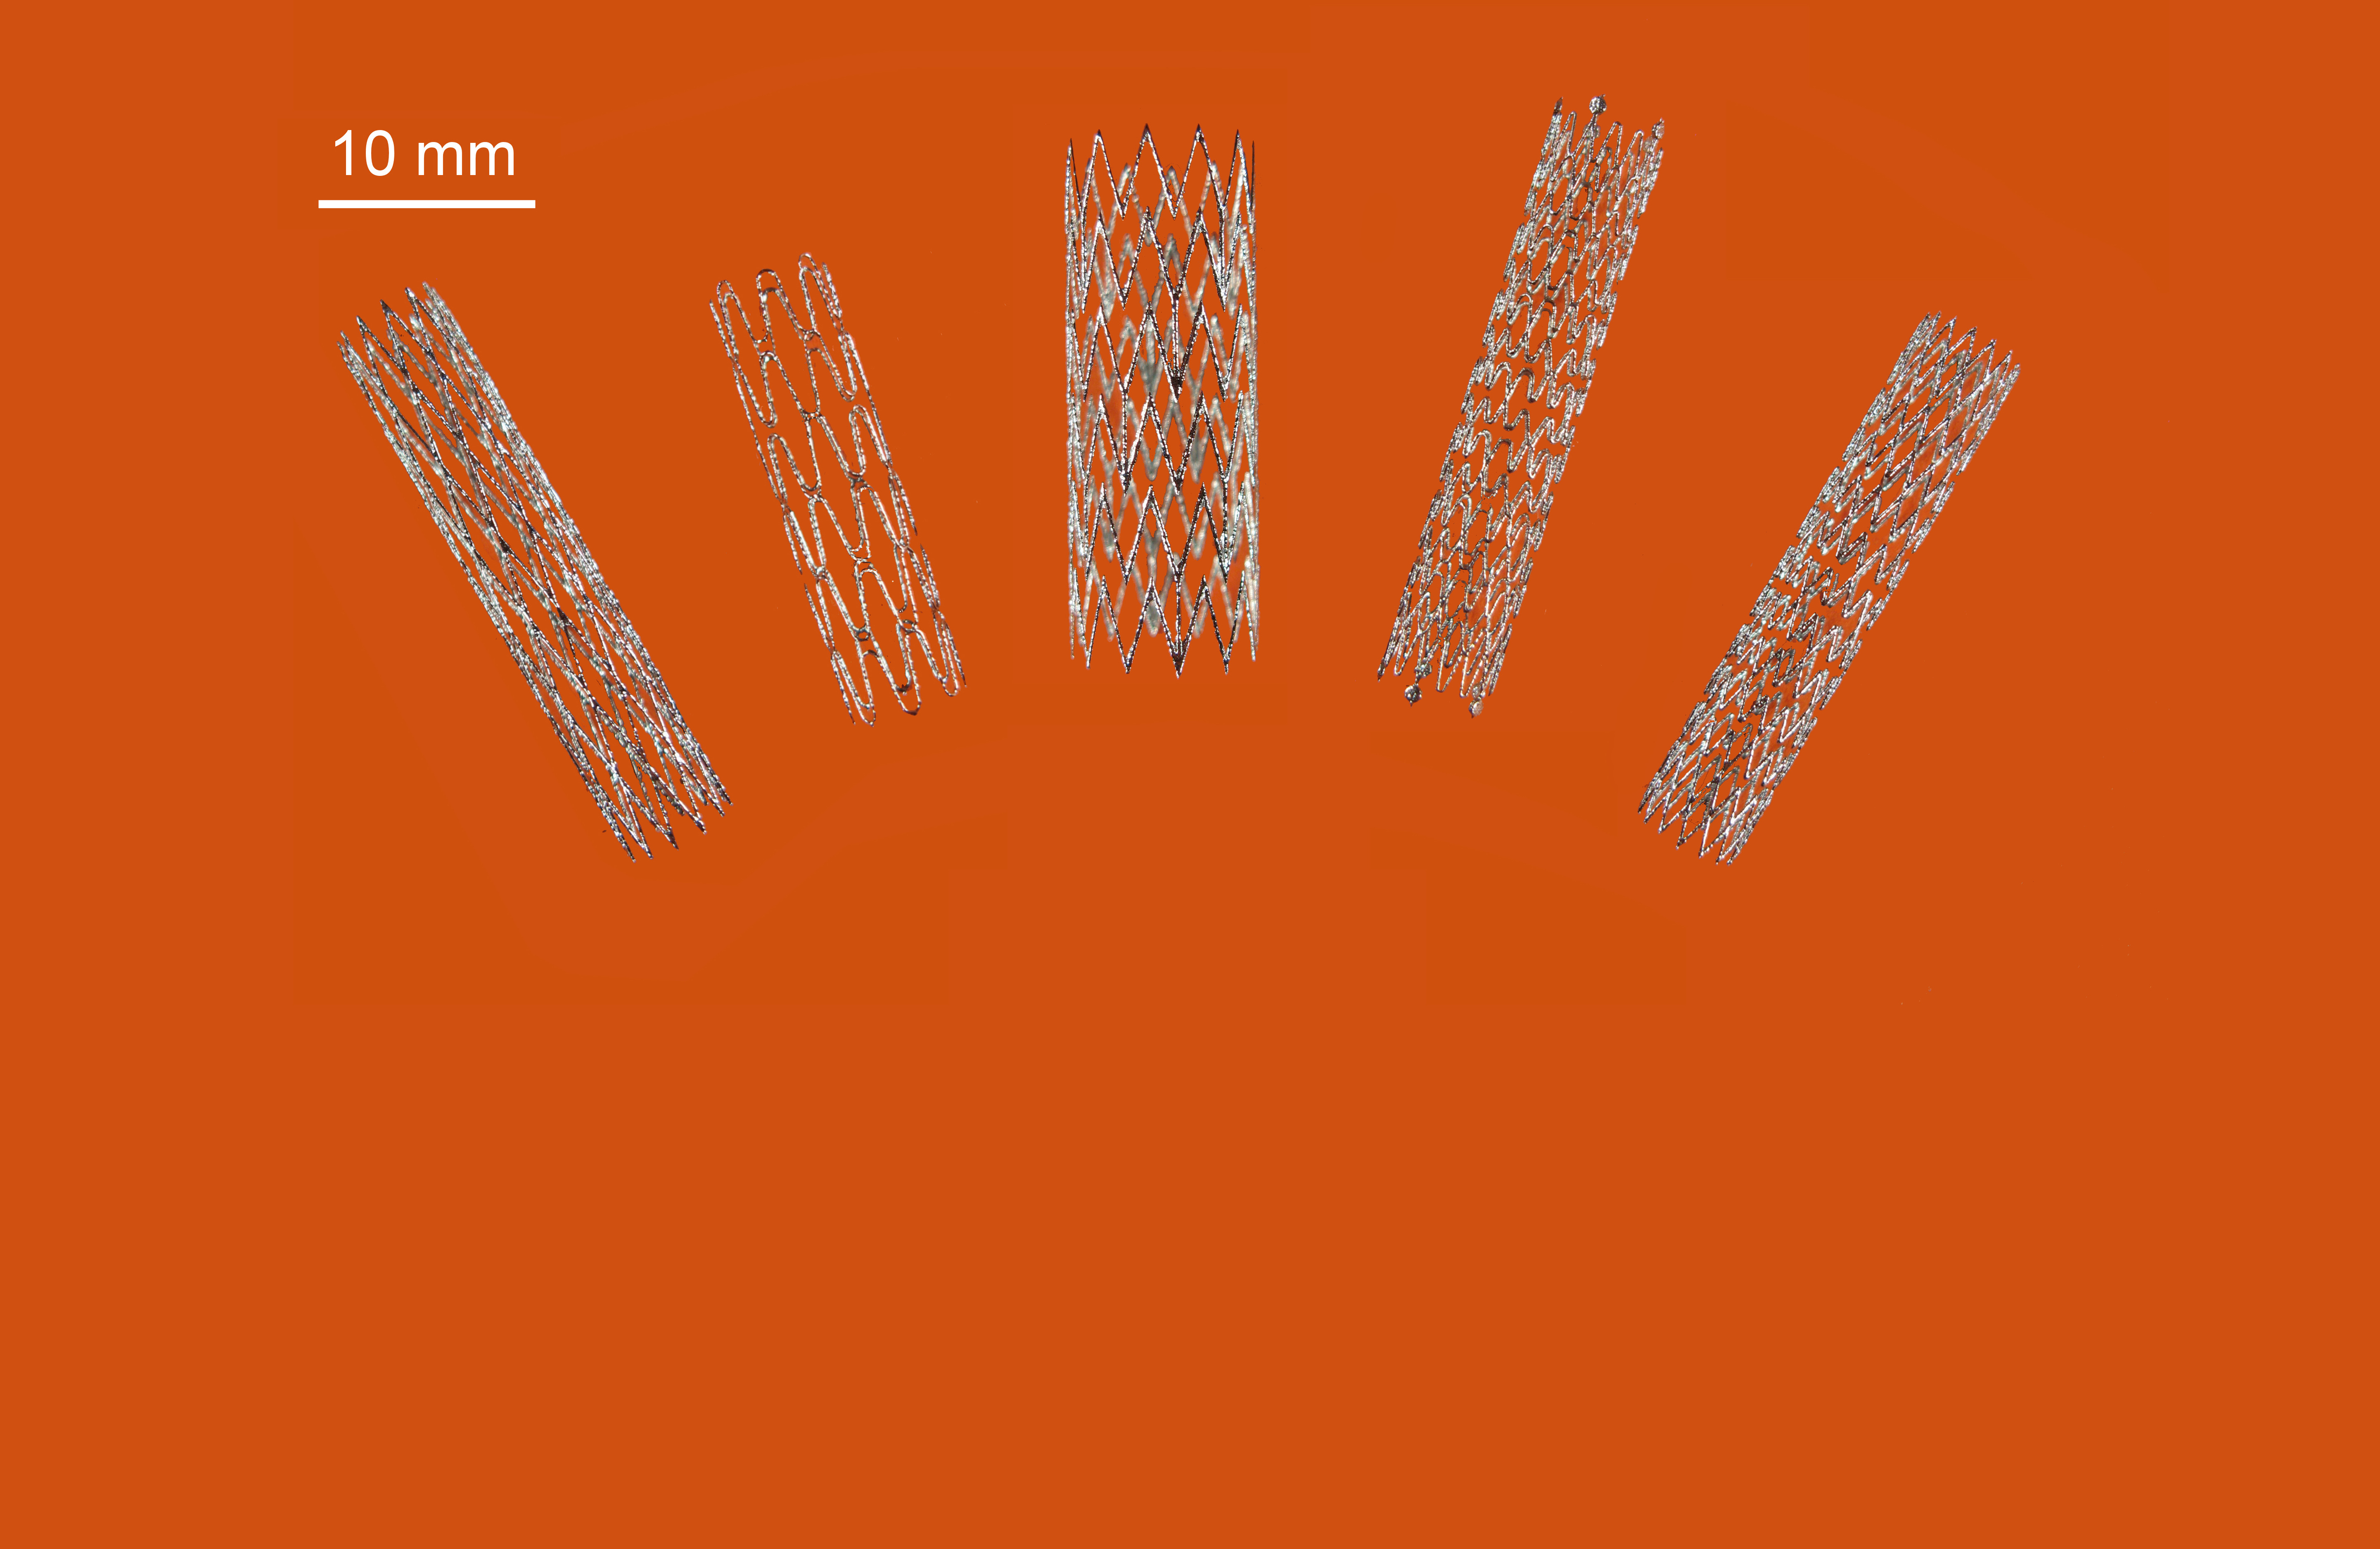 Cloe up view of five 3D prited stents of various sizes on an orange background.